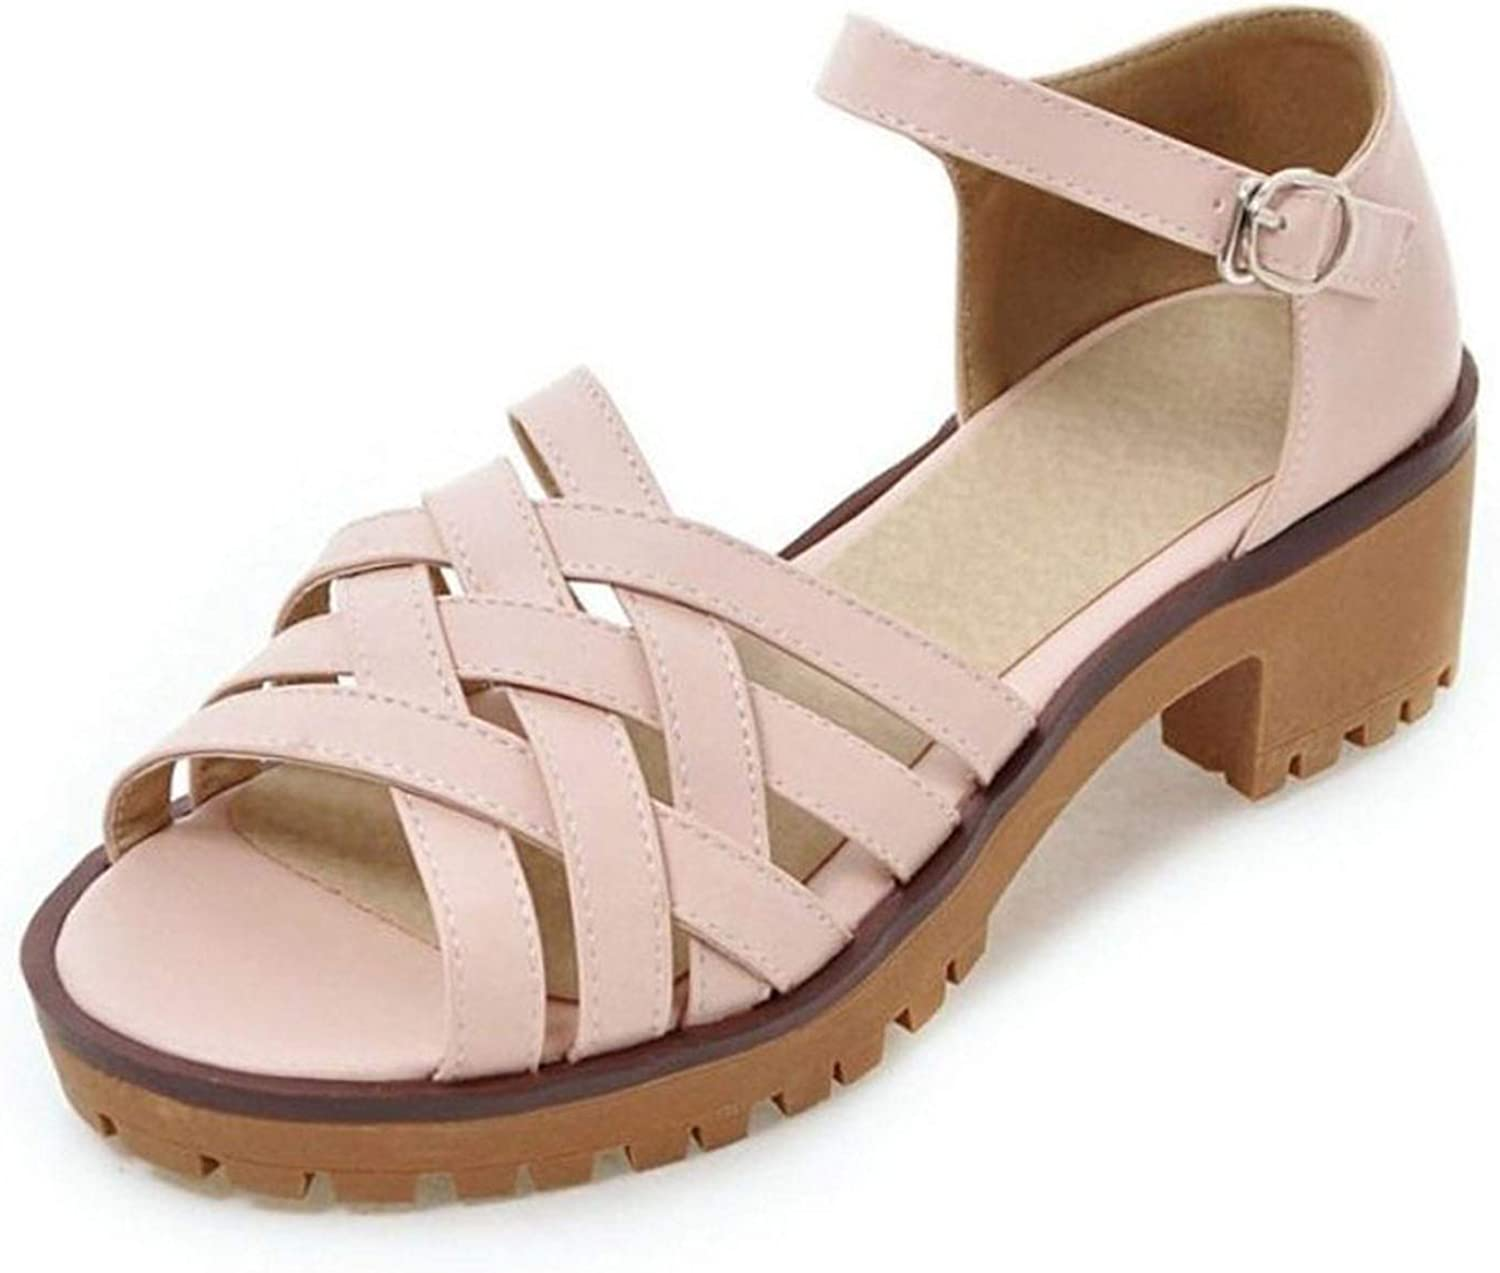 Summer Women Sandals Buckle Solid color Open Toe Sandals Leisure Outdoor Beach Women Simple shoes